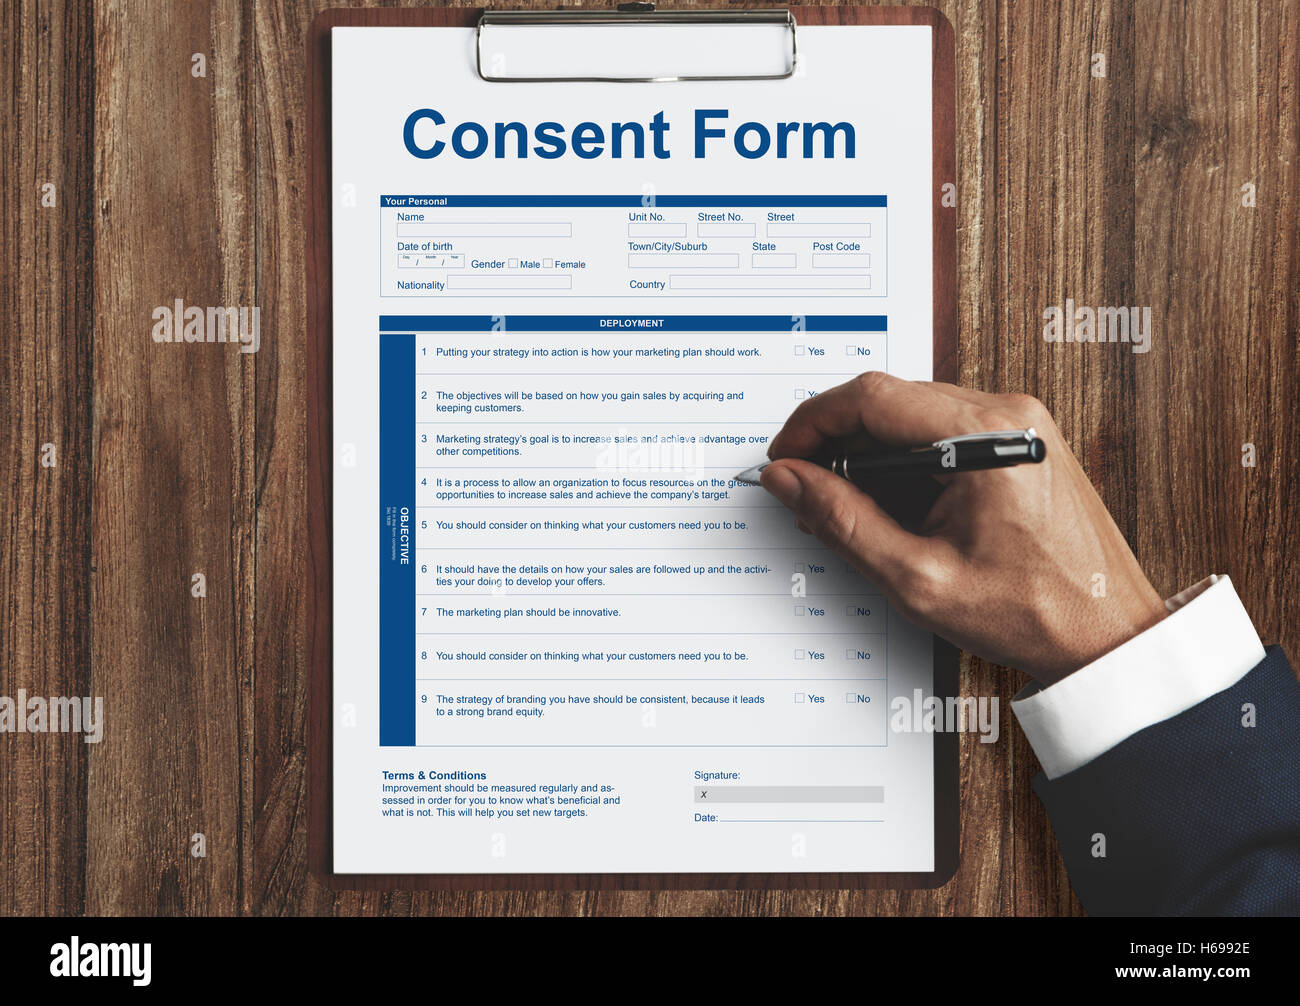 Consent Form Healthcare Medical Hospital Concept Stock Photo